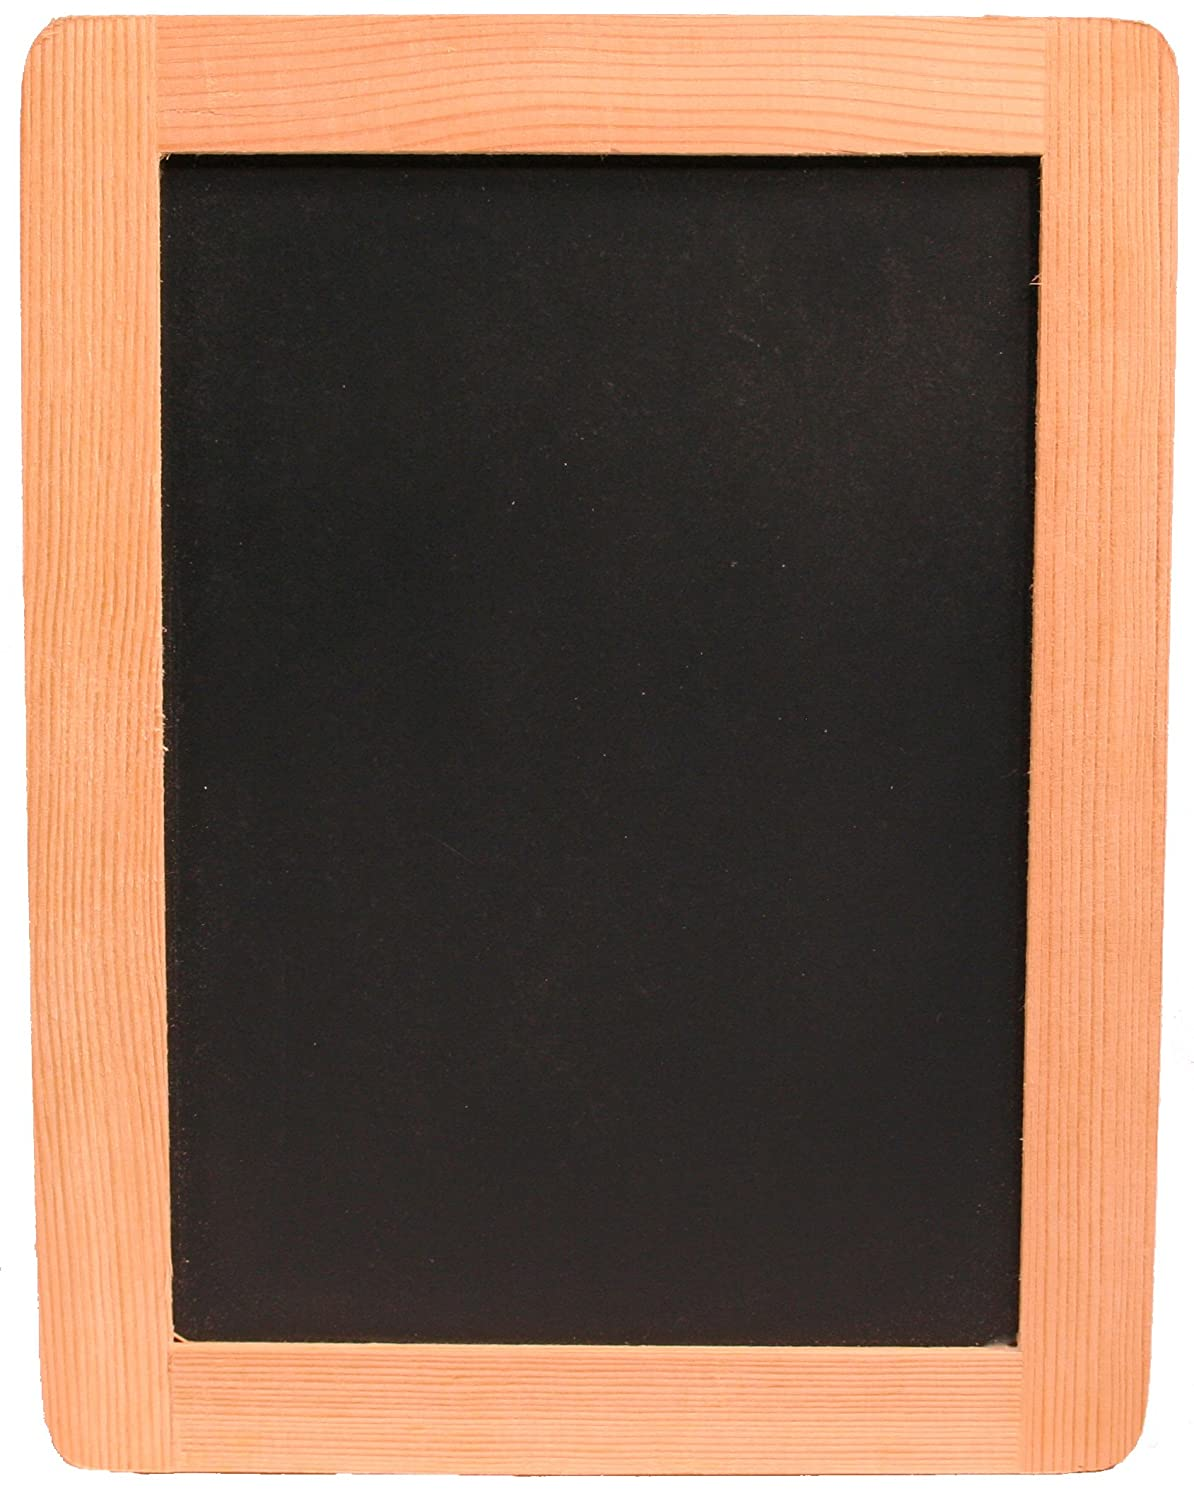 """Creative Hobbies 5"""" x 7"""" Synthetic Chalkboard With Unfinished Wood Frame -Pack of 6 Chalkboards"""